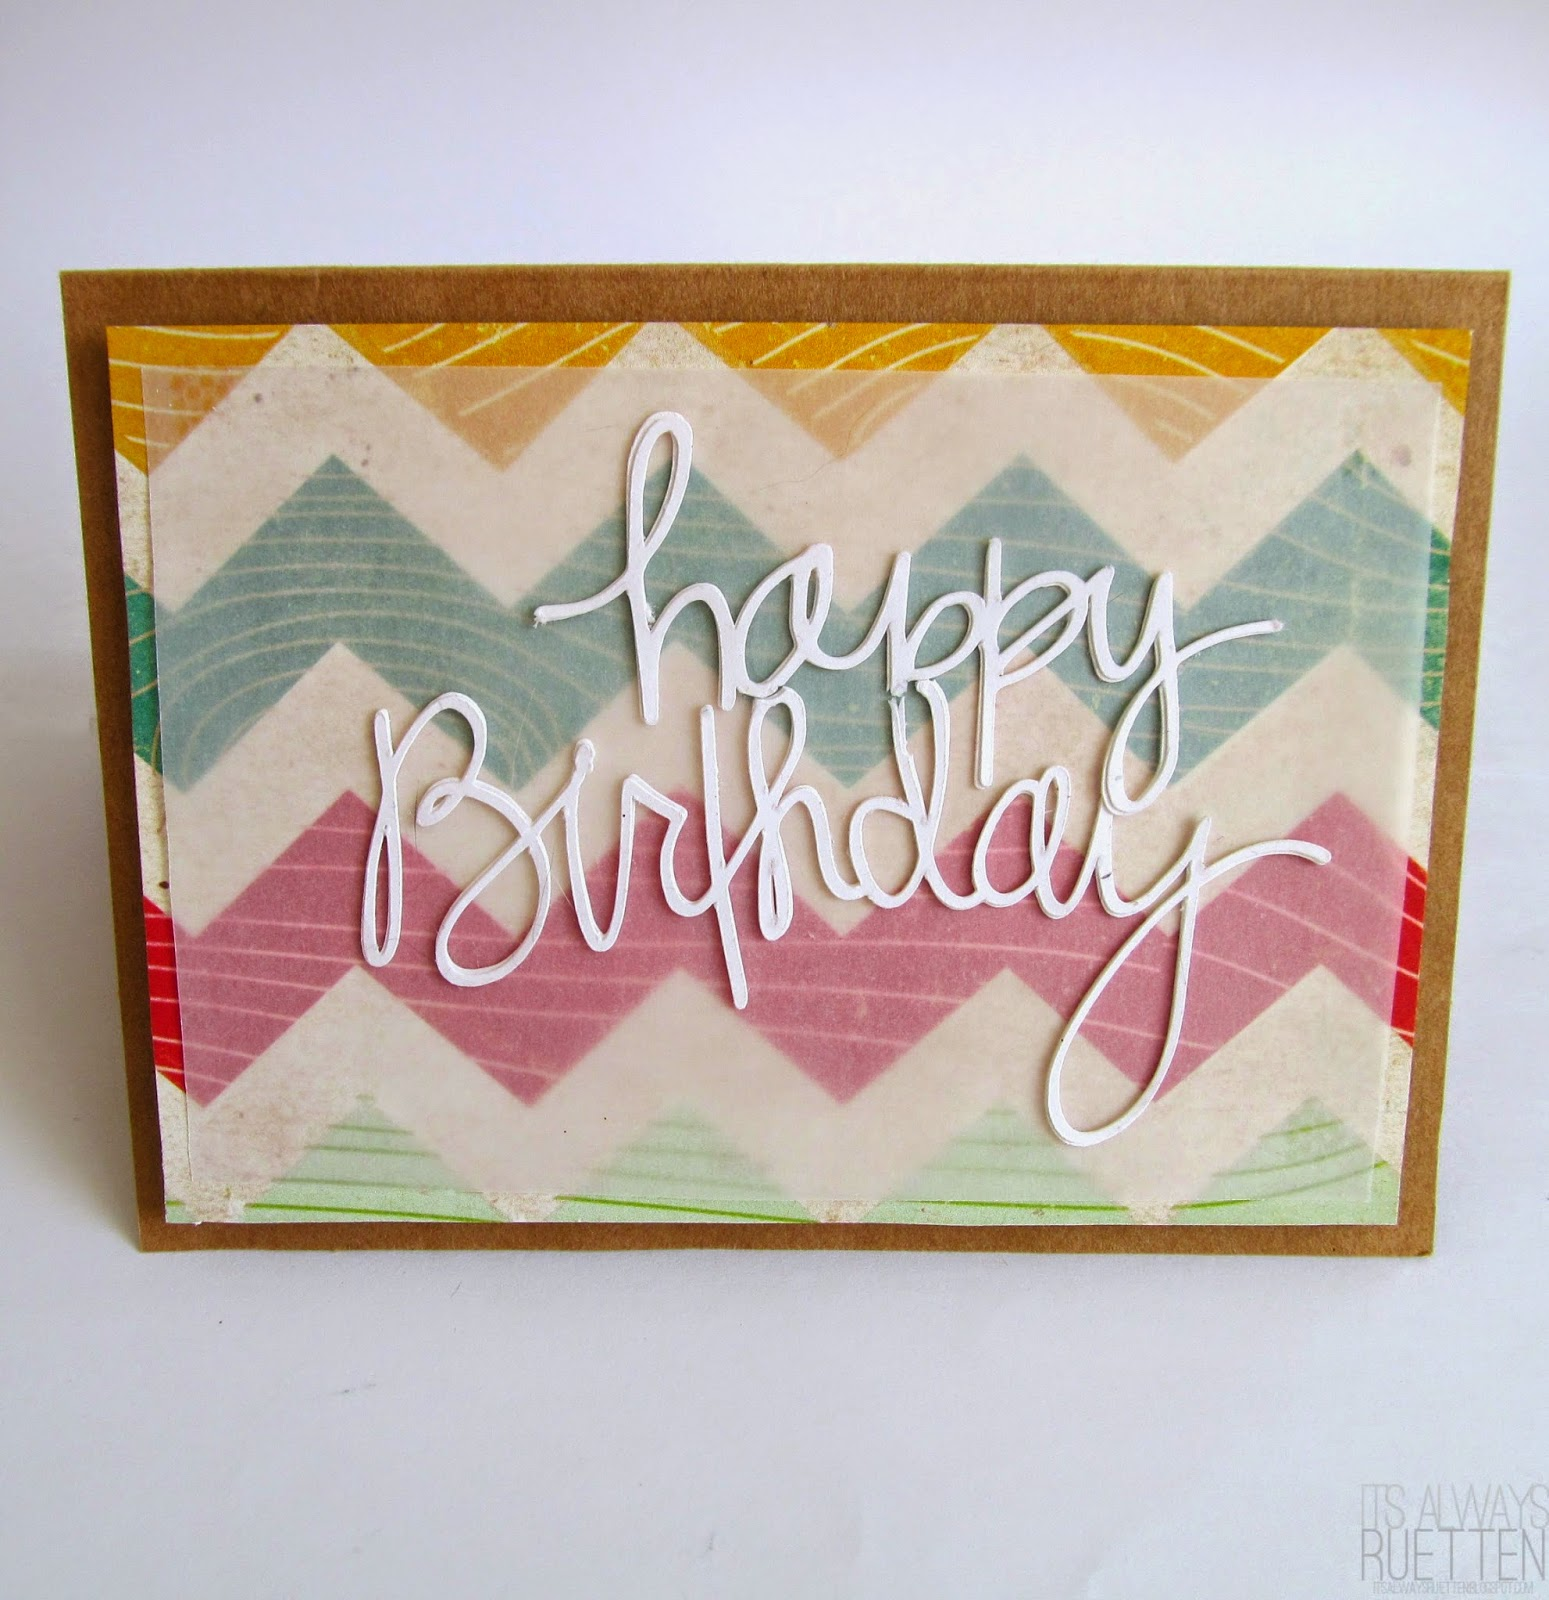 25 beautiful handmade cards – Handmade Happy Birthday Cards